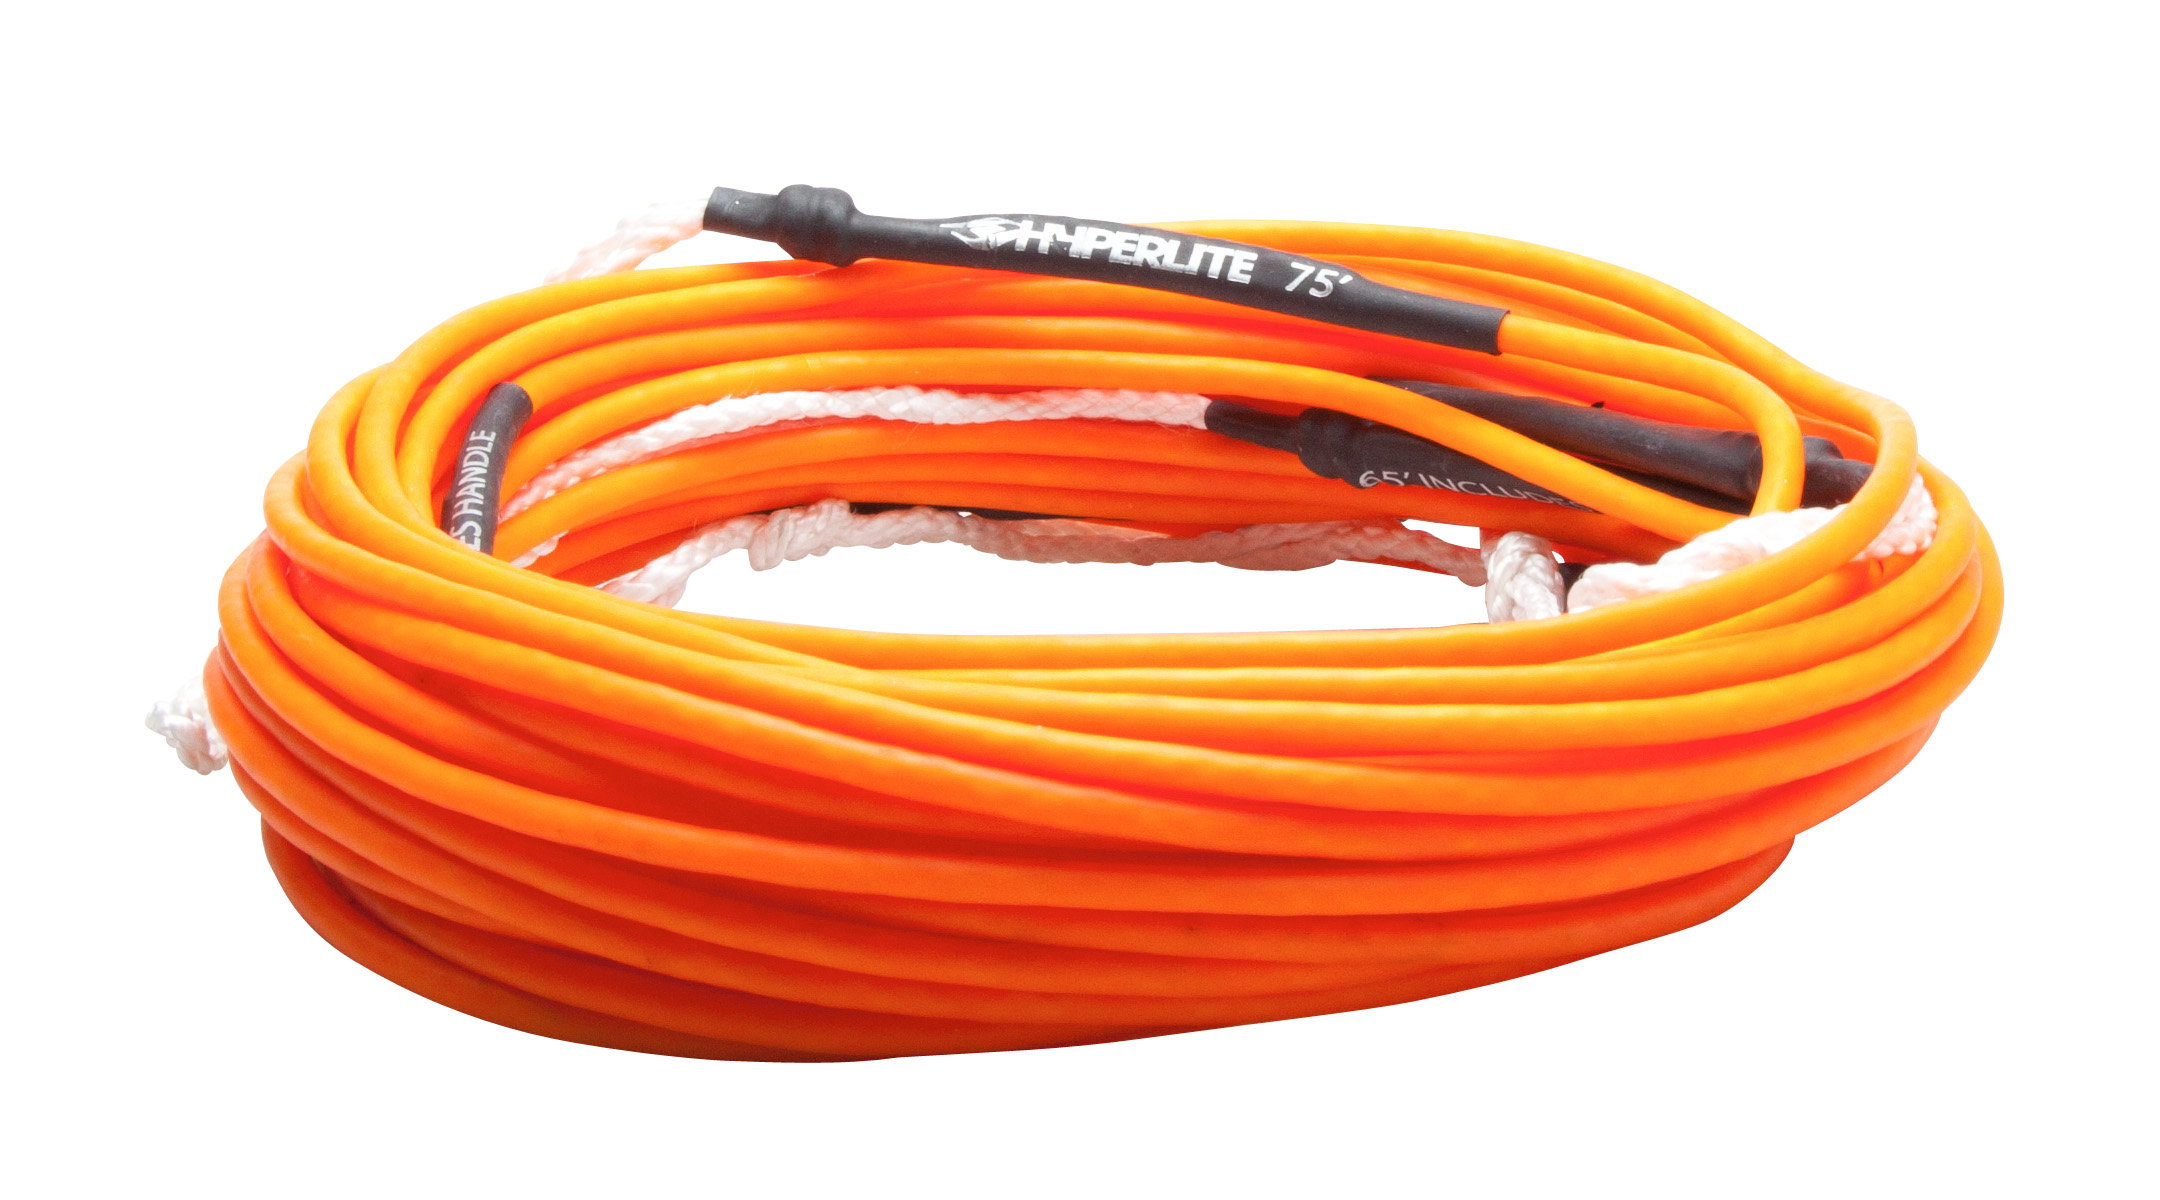 80 FT SILICONE A-MAINLINE NEON ORANGE HYPERLITE 2017